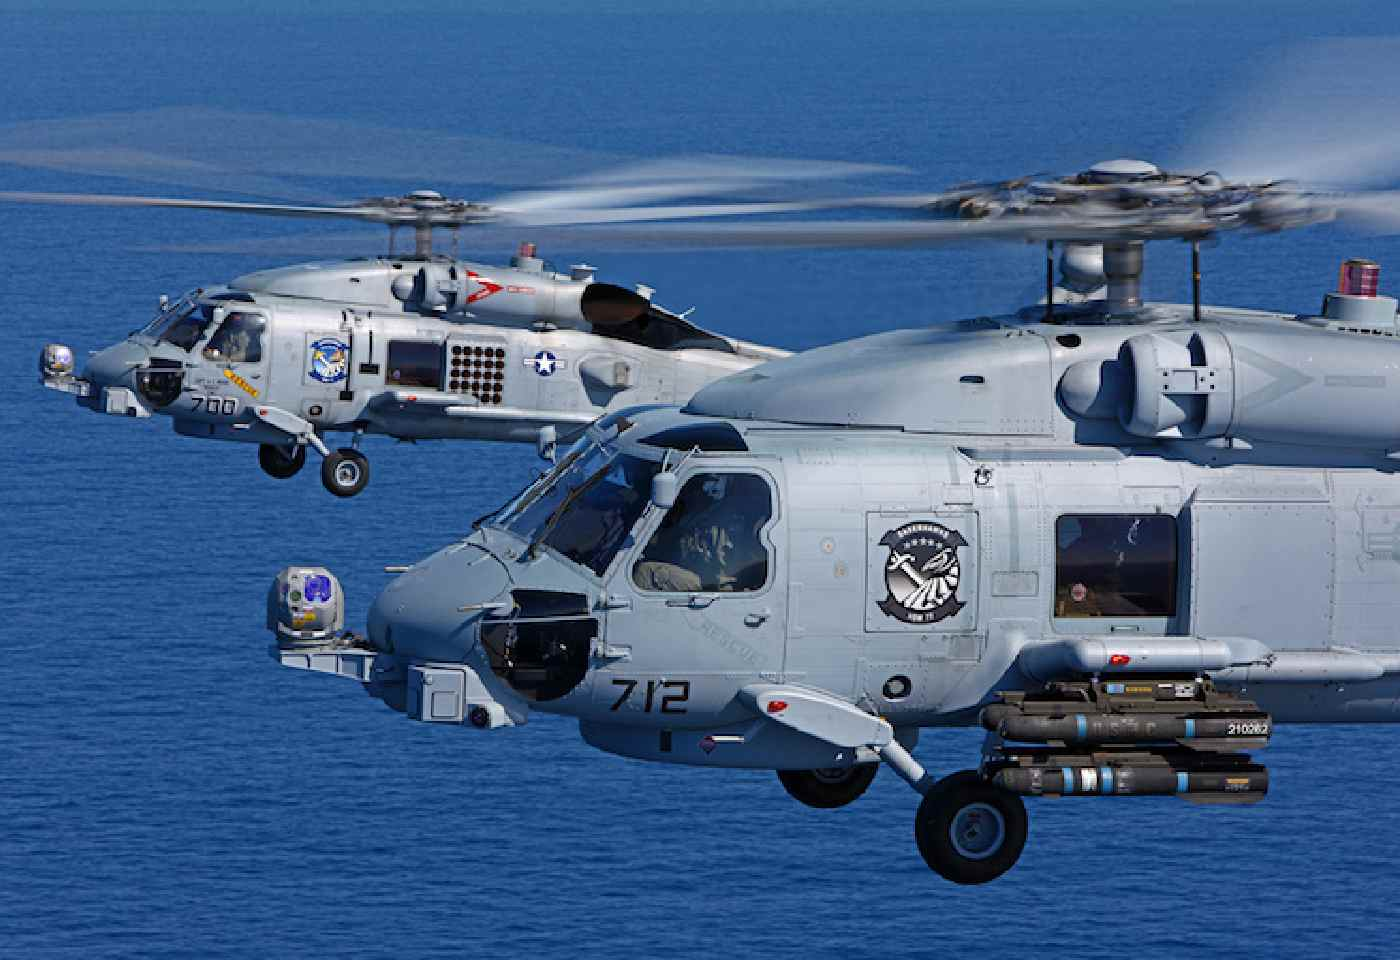 US Navy hands over MH 60R helicopters to India in Presence of Taranjit Singh Sandhu